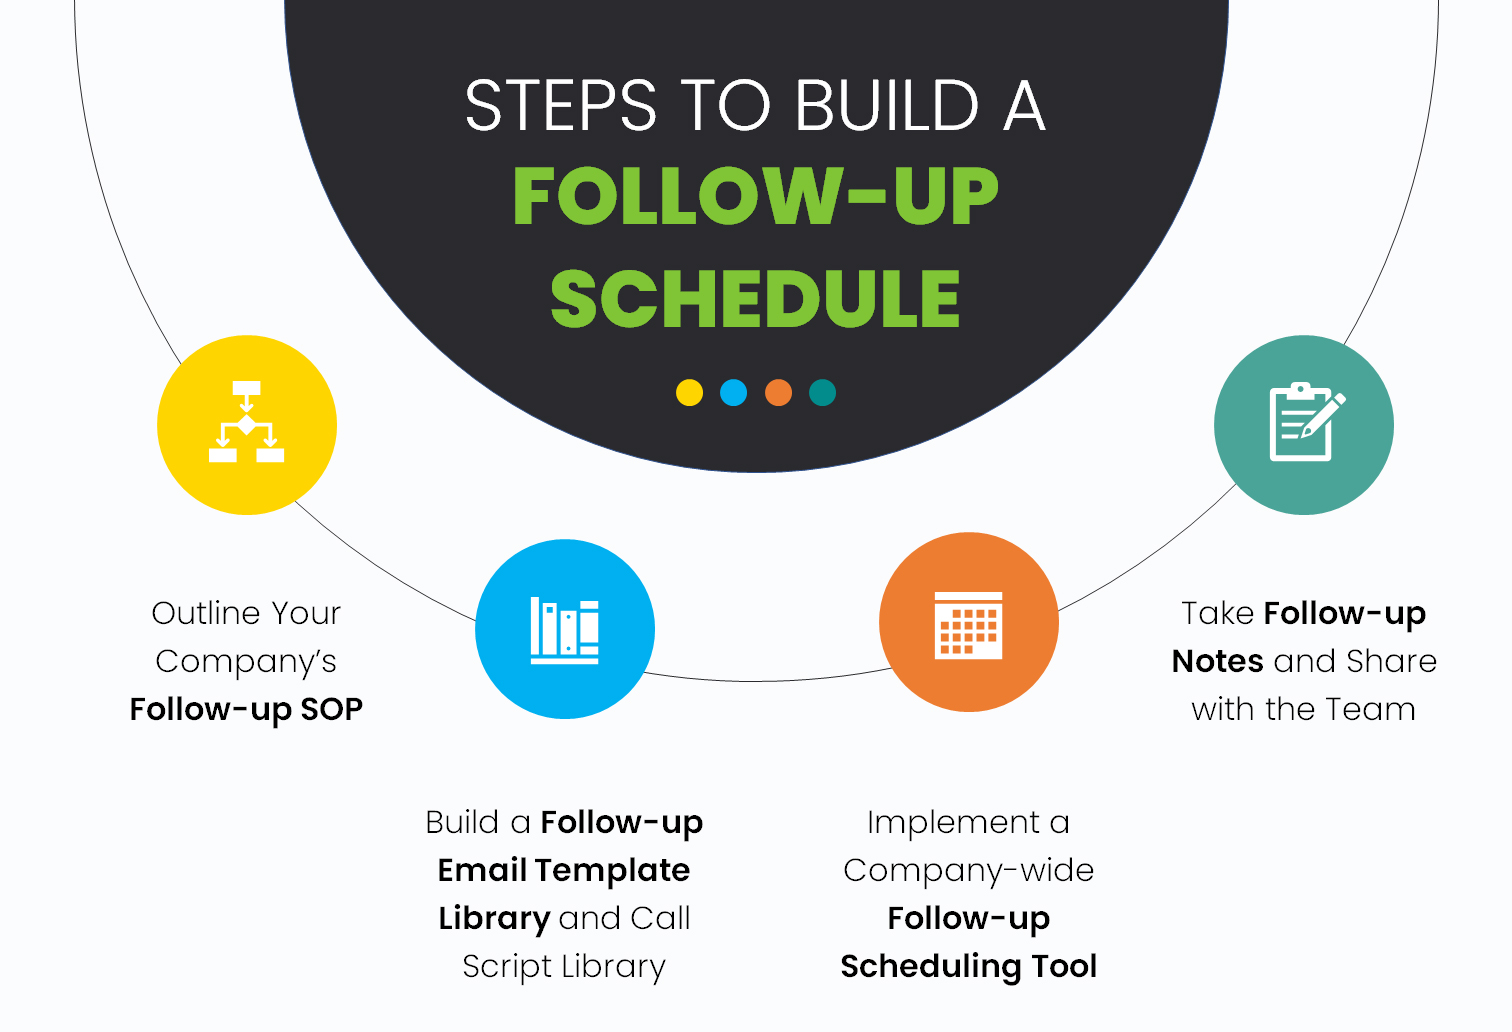 Steps to Build A Follow-up Schedule